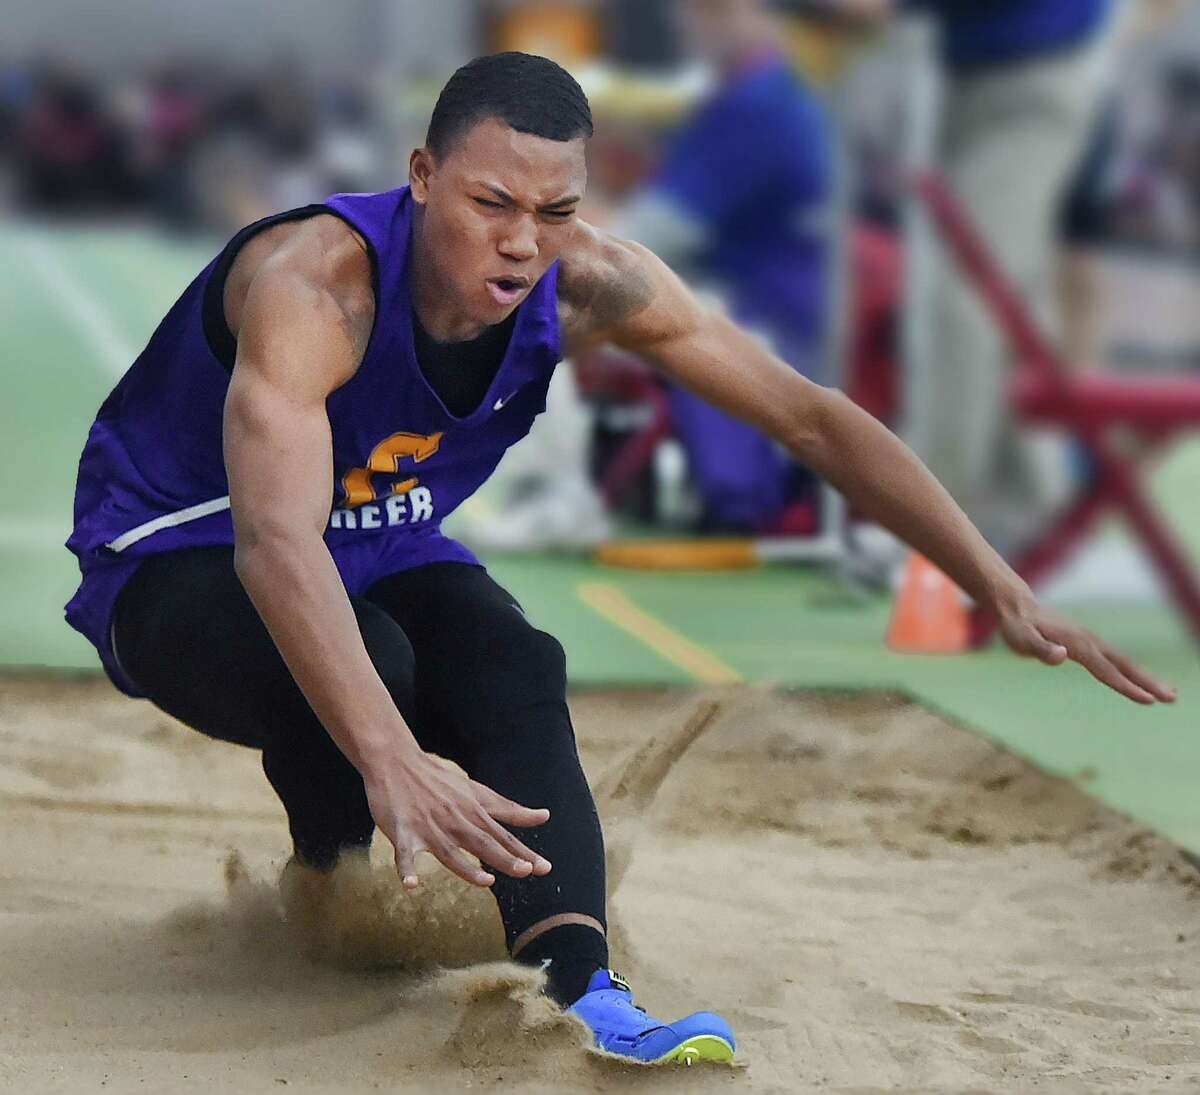 Career senior Dyshon Vaughn wins the long jump with a distance of 23-08 1/2 at the CIAC Boys Indoor Track and Field State Open on Feb. 17 at Floyd Little Athletic Center at Hillhouse High School in New Haven.